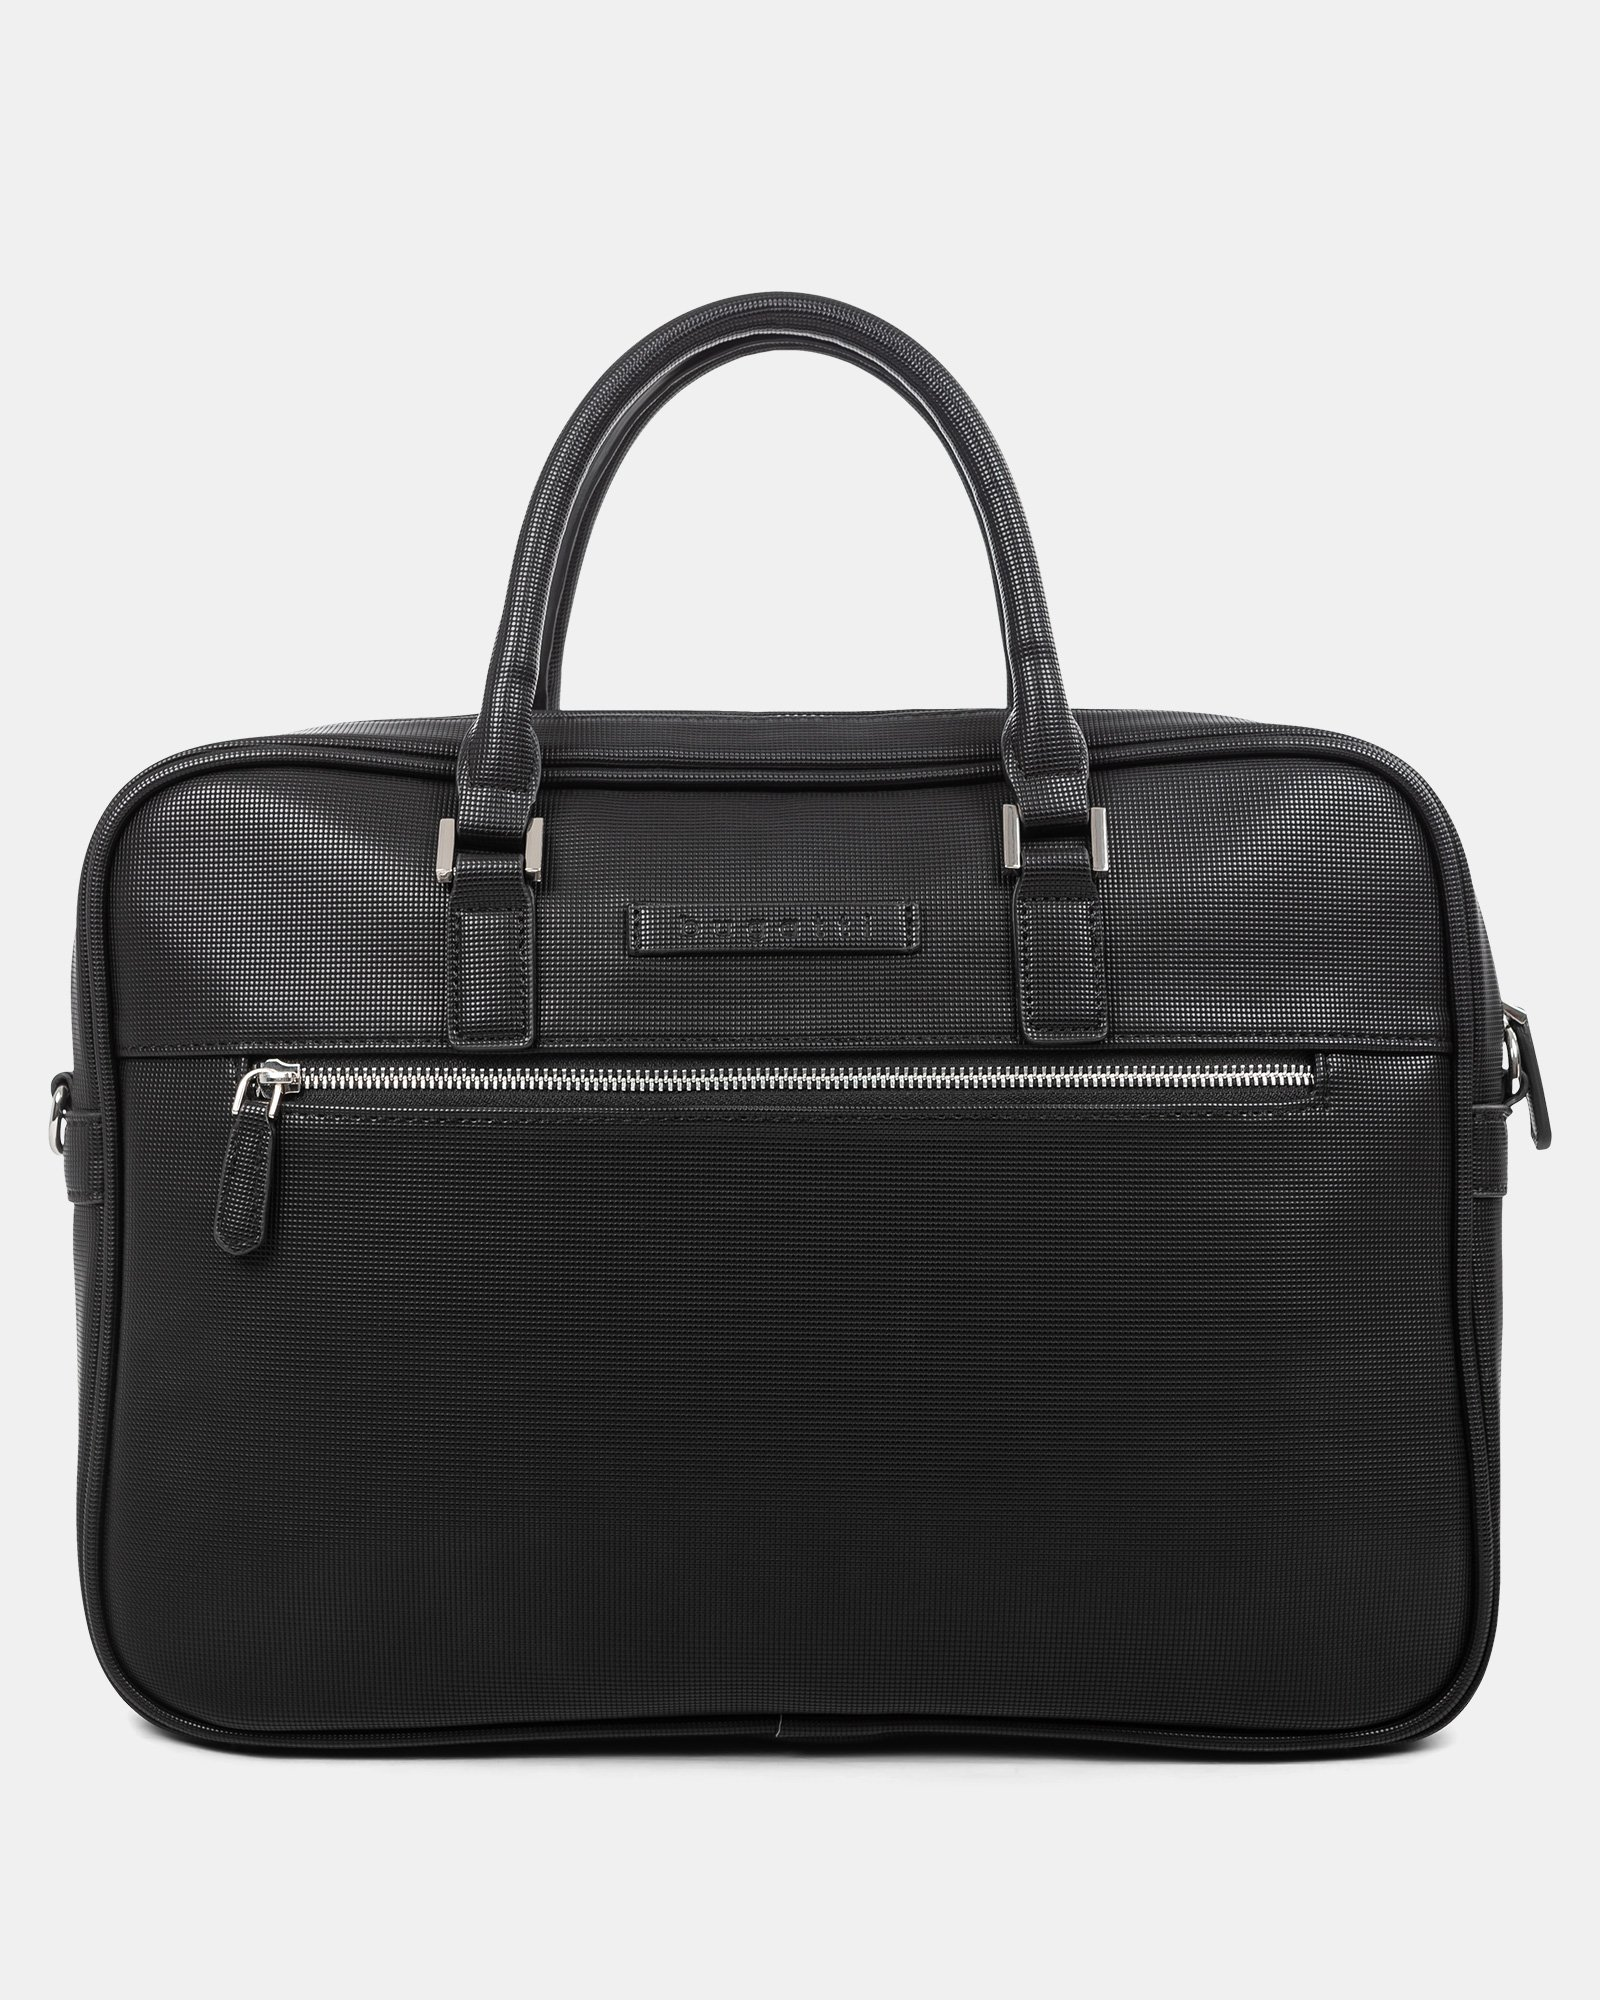 """Pure - LADIES EXECUTIVE BRIEFCASE with Padded laptop section for 15.6"""" - Black  - Bugatti - Zoom"""